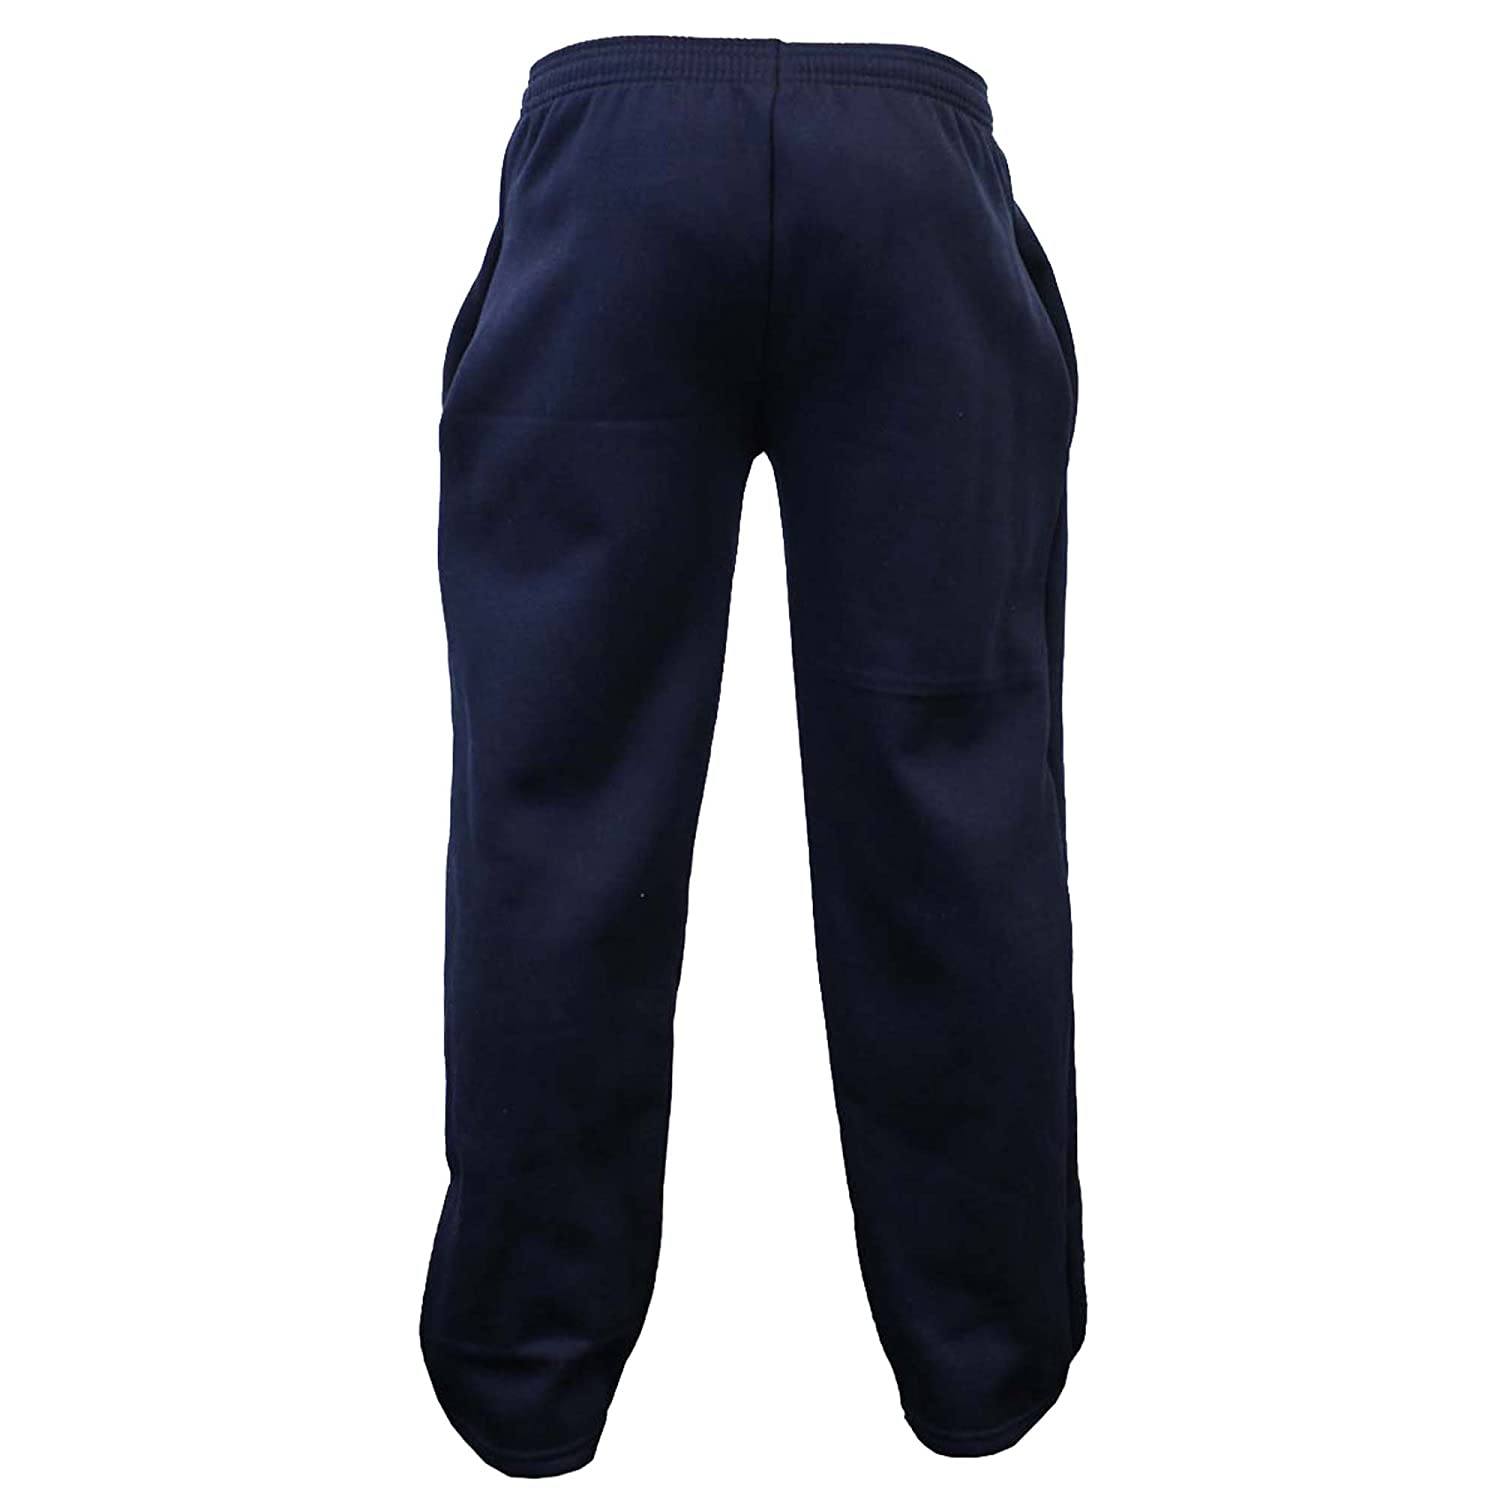 Boys Bottoms Kids PE School Pants Tracksuit Fleece Lined Trousers Sports Casual NA